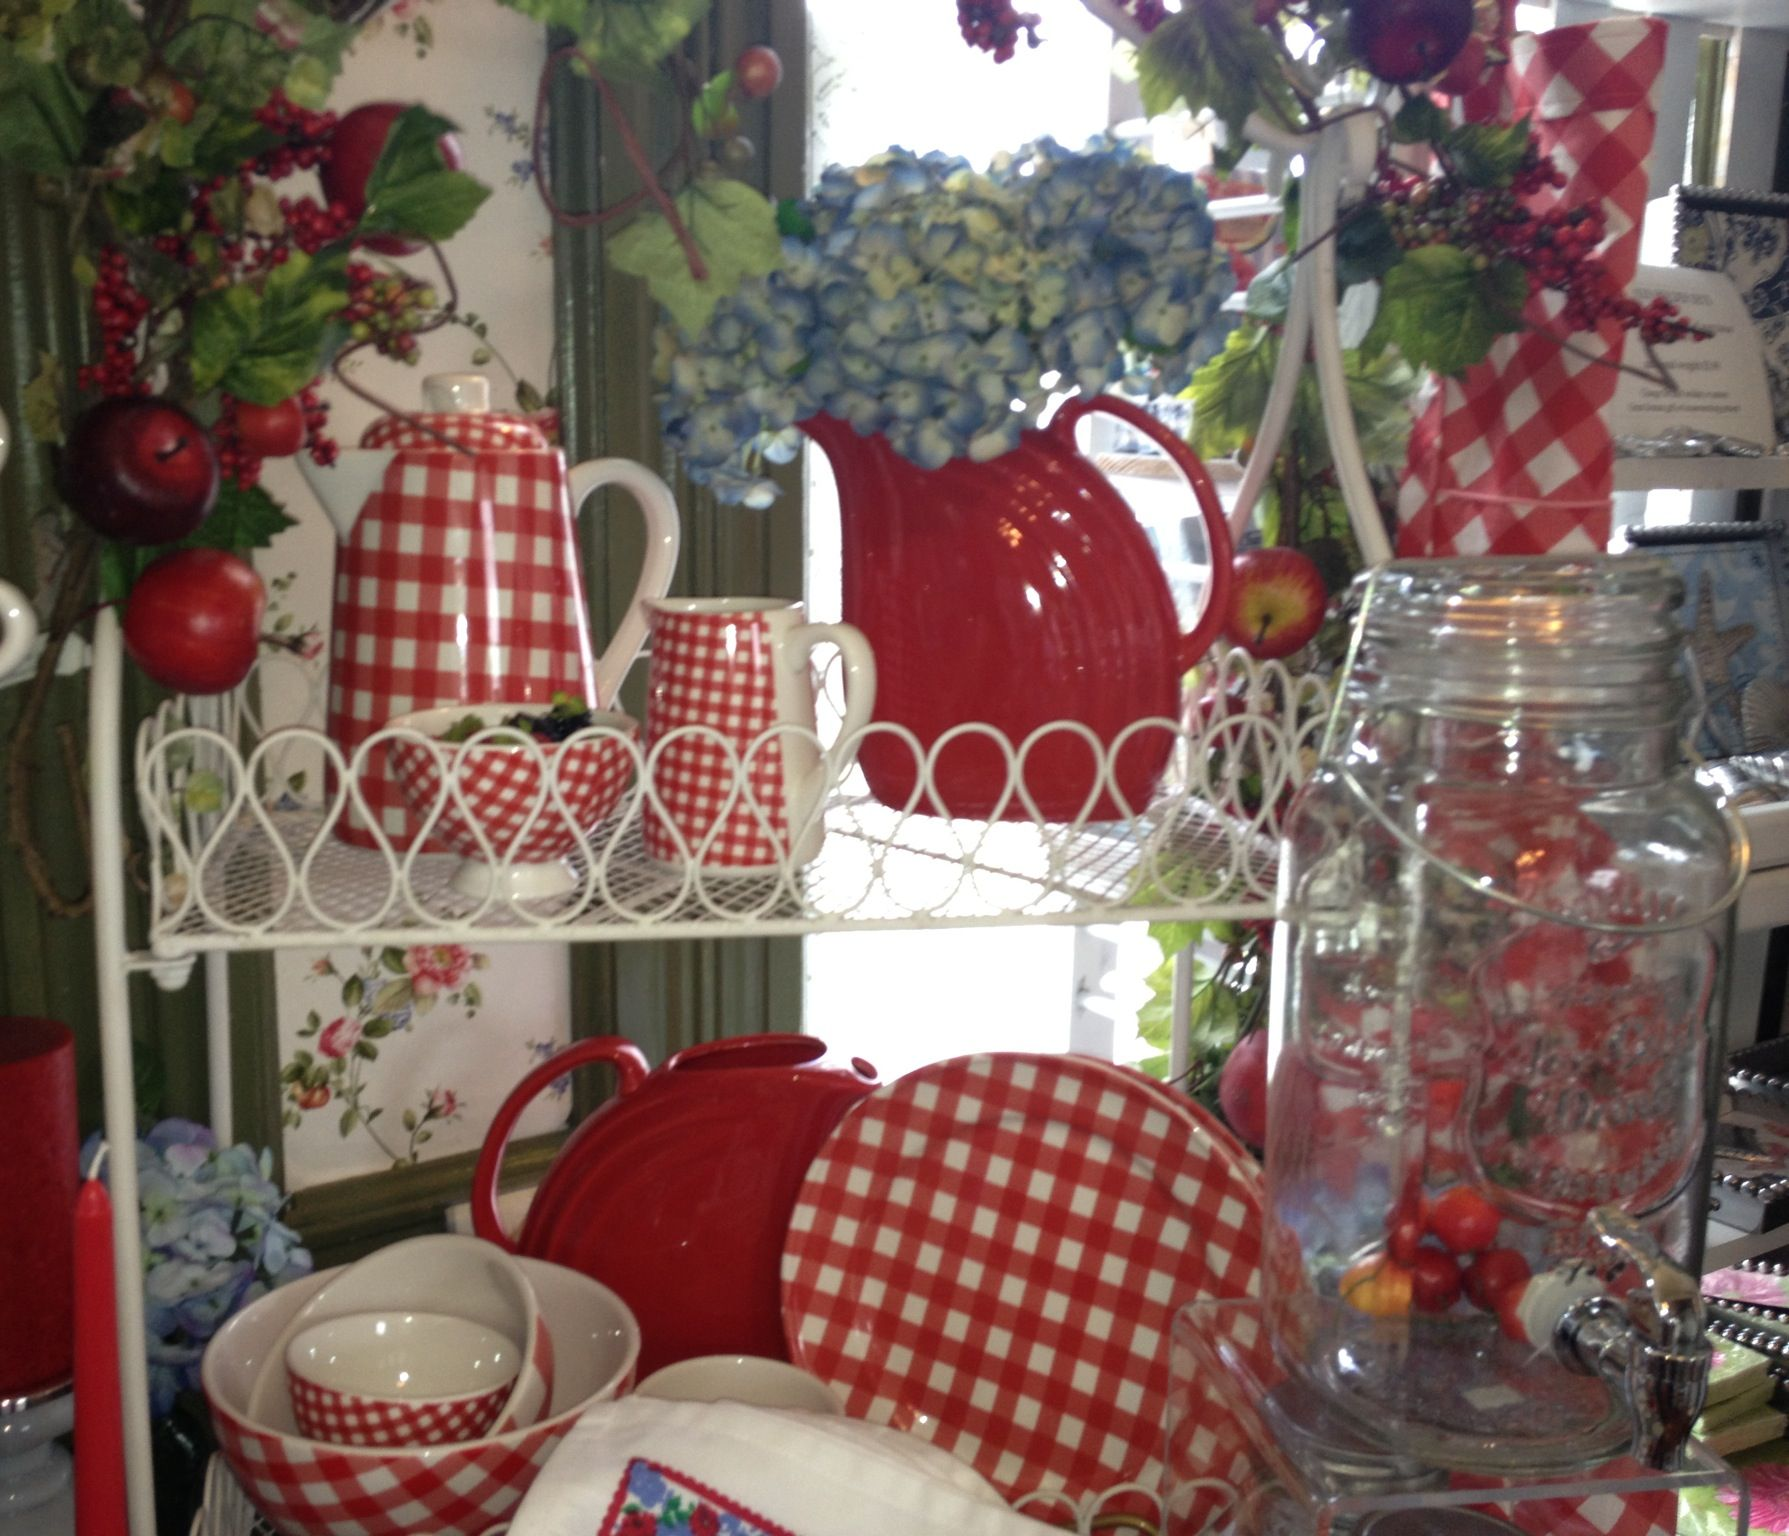 astonishing white kitchen red accents | Red Gingham Dishes! in 2019 | Red kitchen, Red, white ...